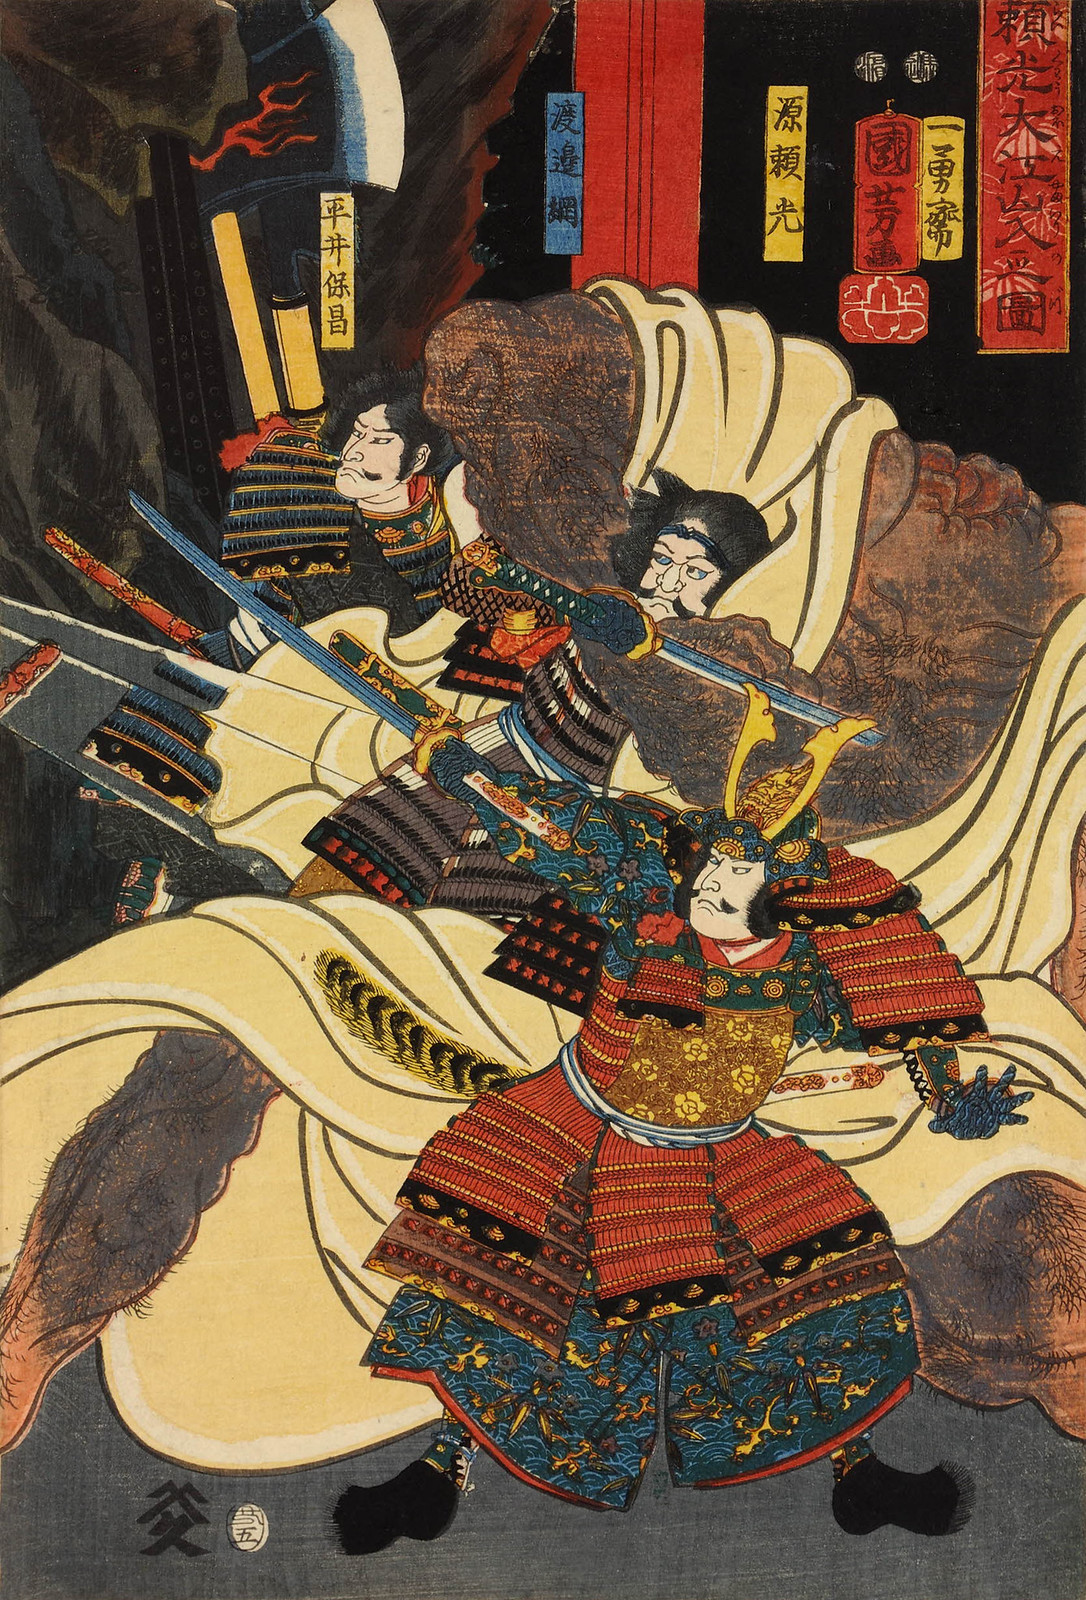 Utagawa Kuniyoshi - Raiko Oeyama iri no zu, 1853 (right panel)